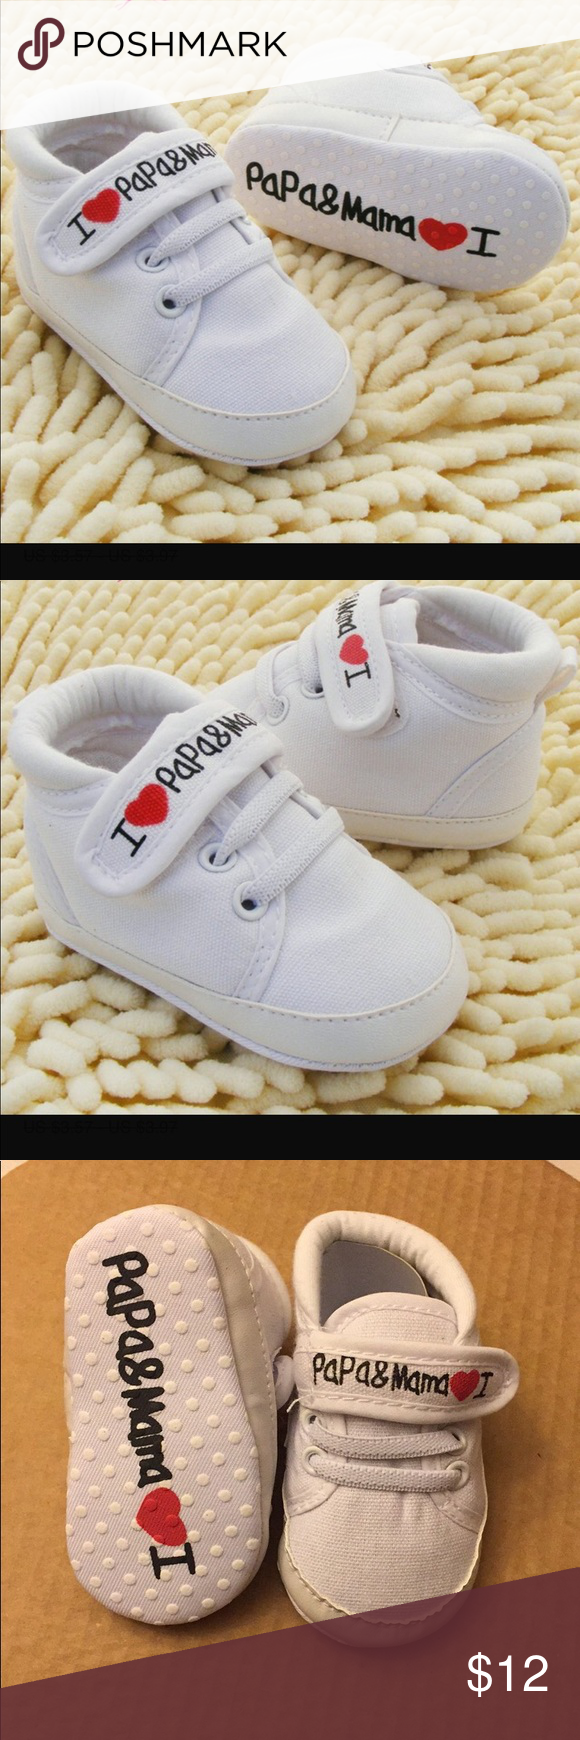 Unisex Baby Shoes I ️ Mama&papa White Baby Shoes I Love